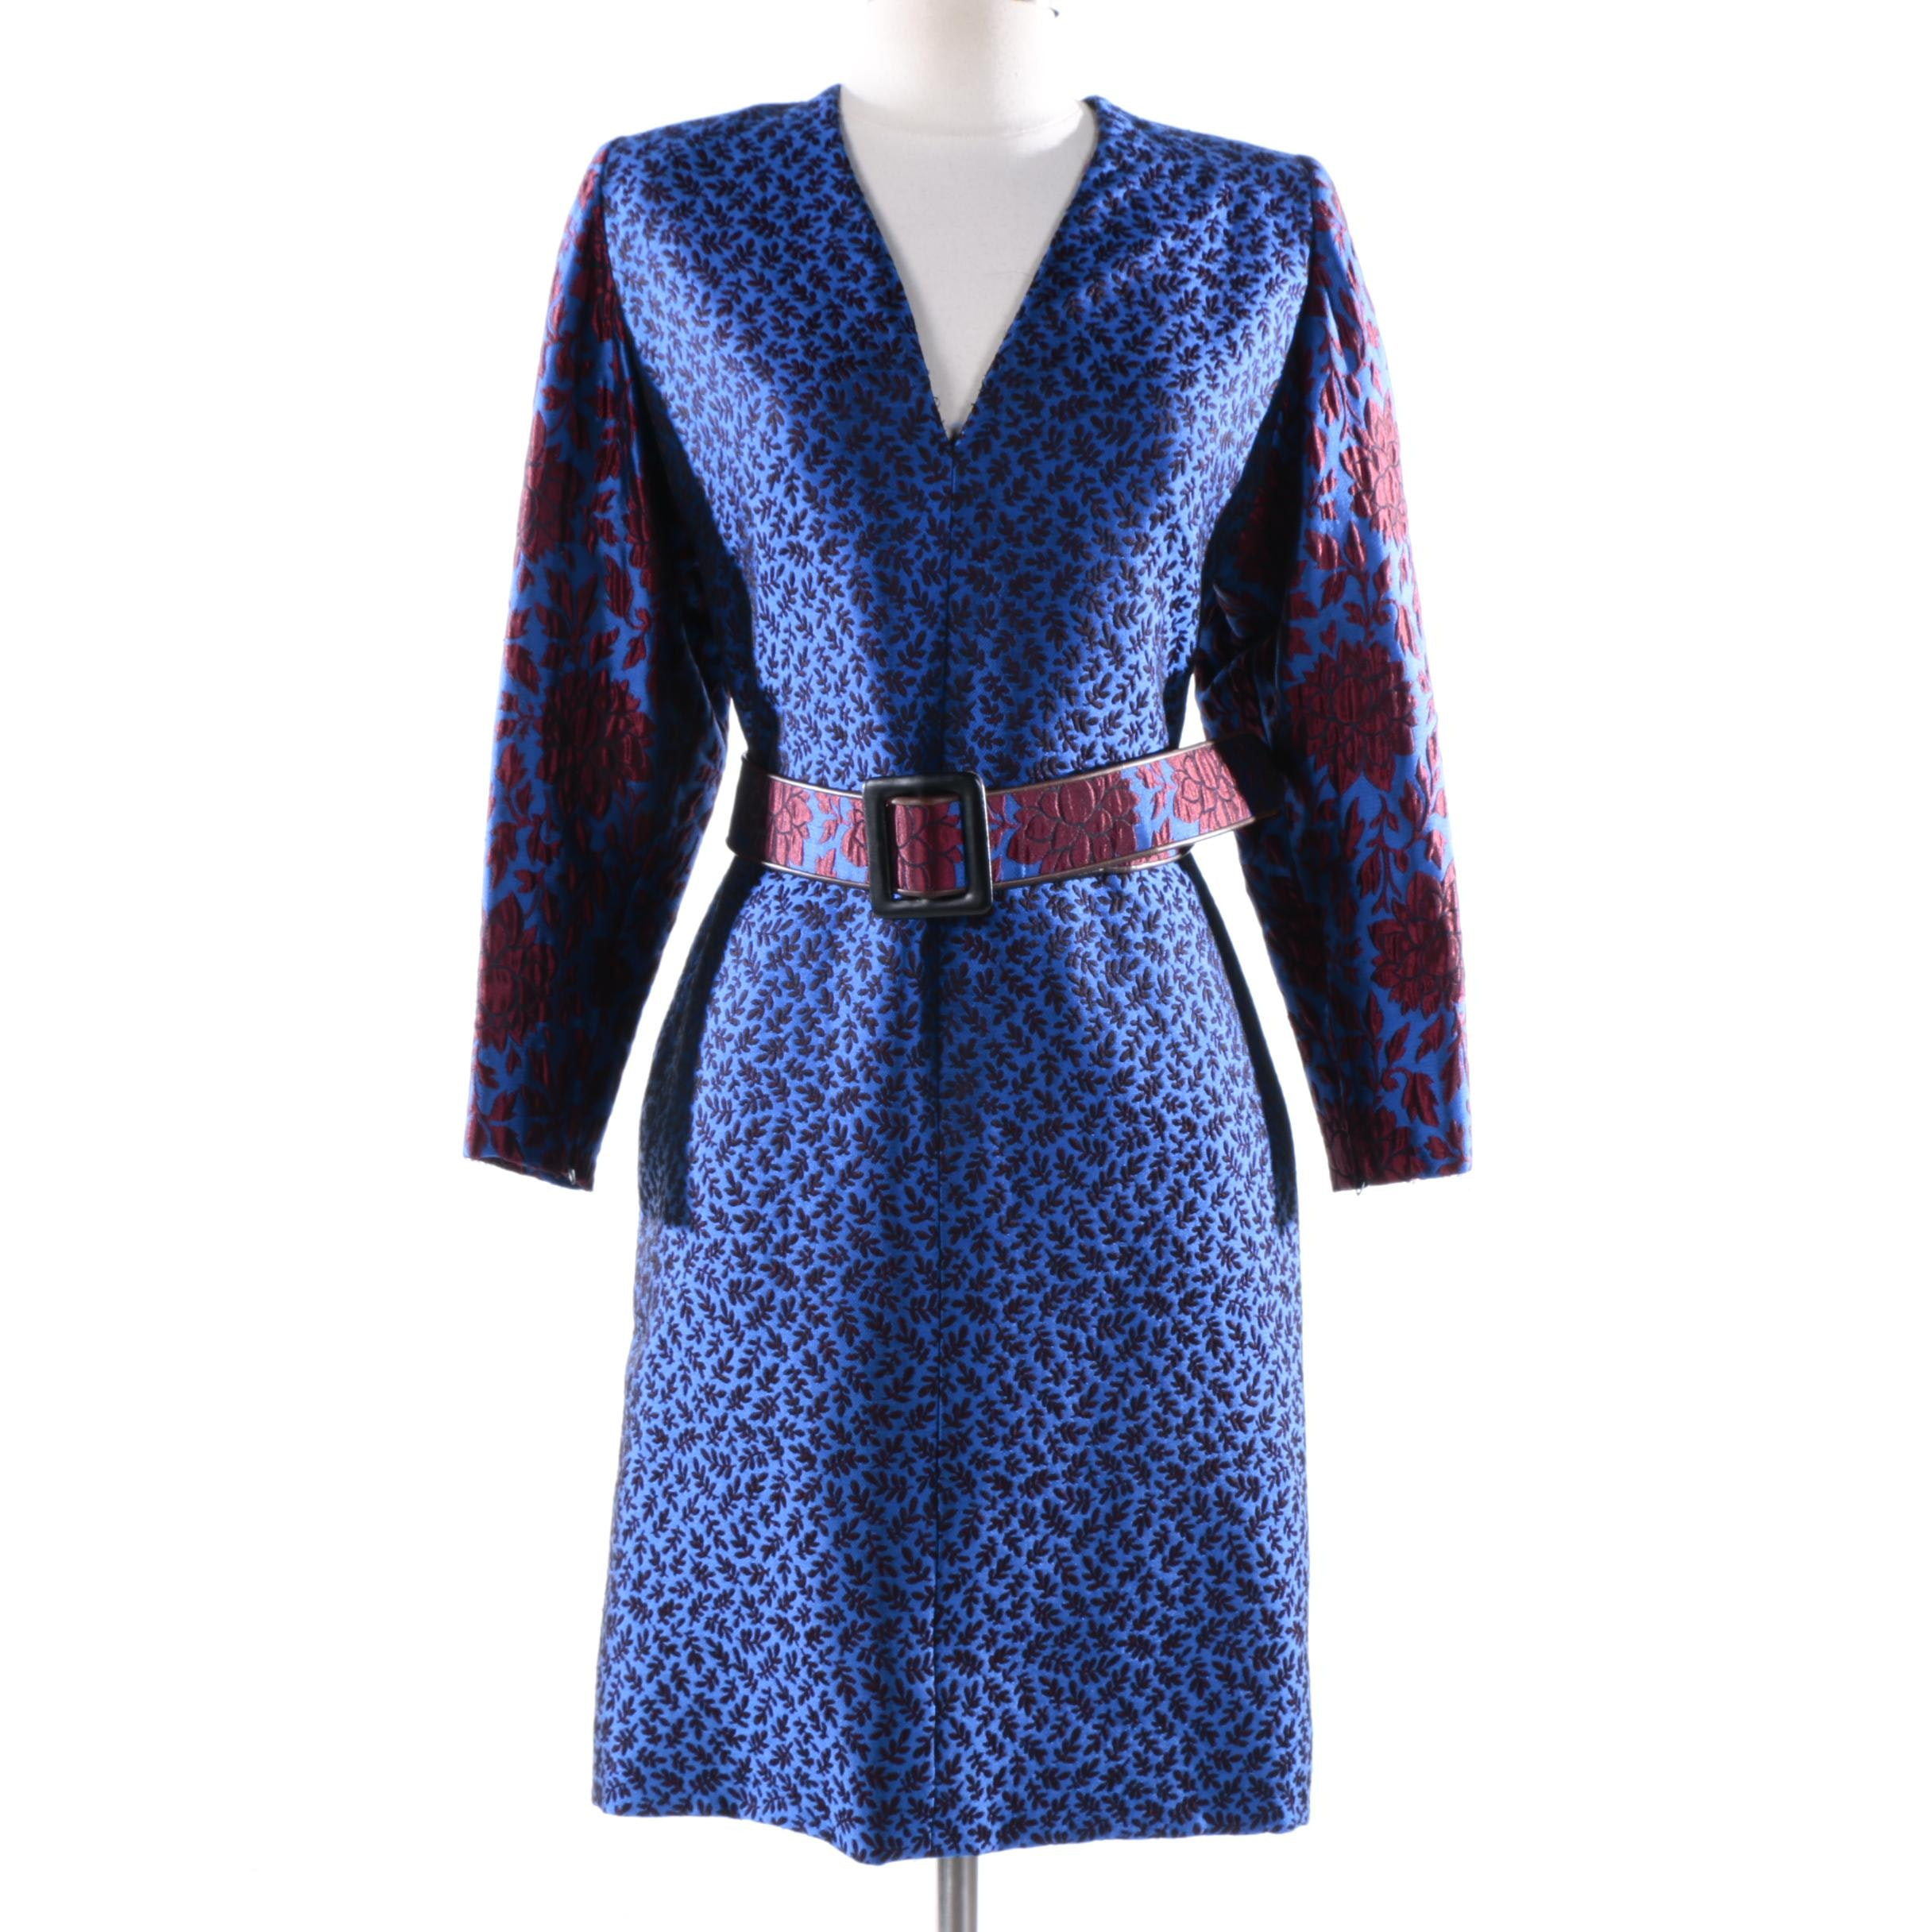 Circa 1980s Vintage Galanos Blue and Red Floral Brocade Dress